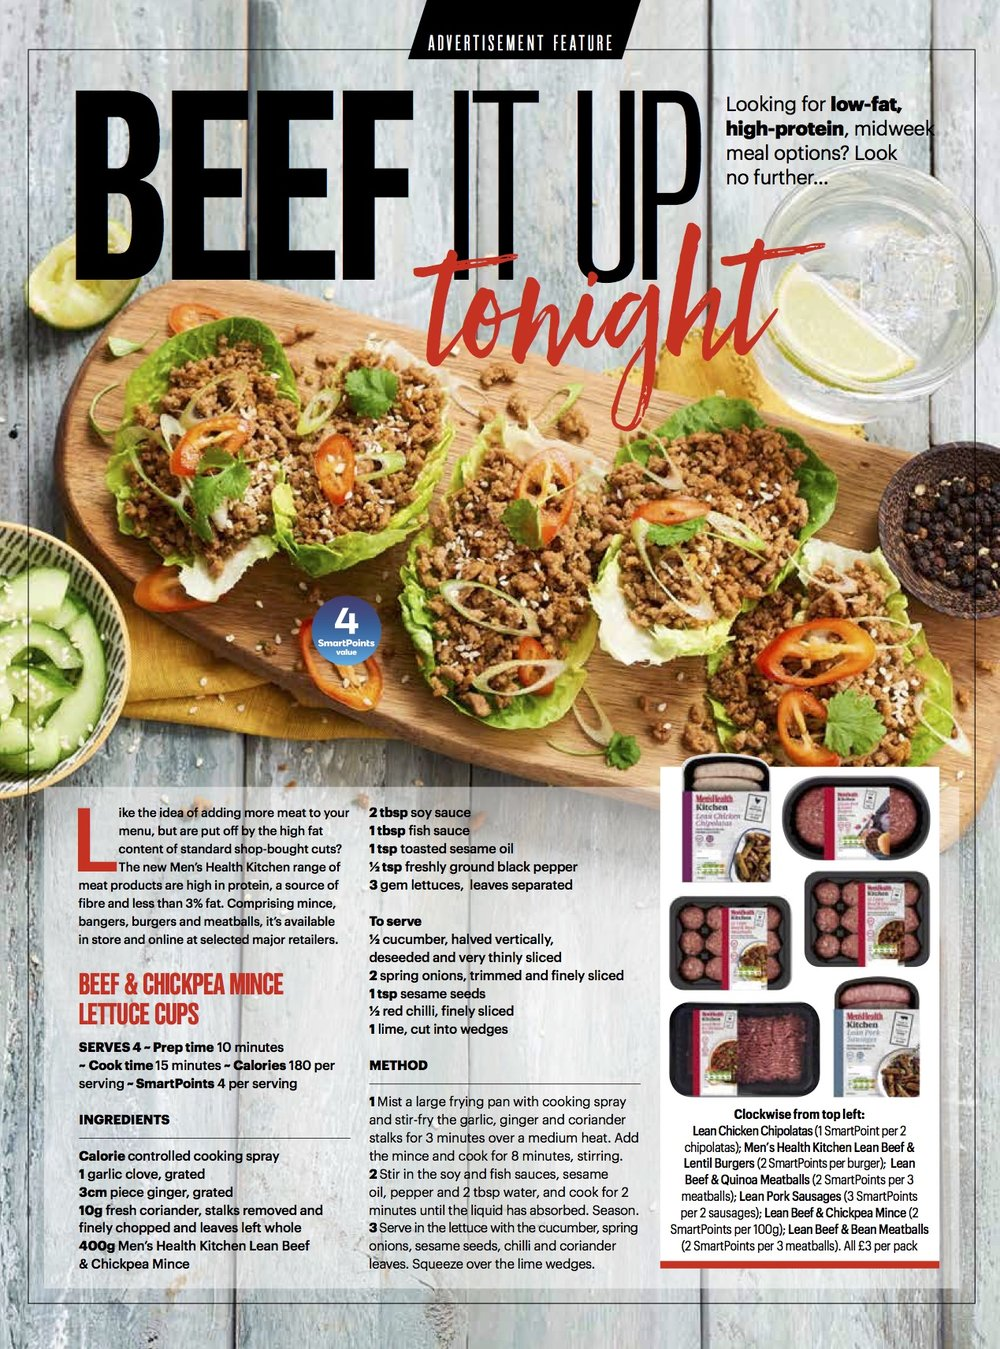 Publication: Weight Watchers magazine, May 2018  Photographer: Clare Miller  Art Direction and props styling: Weight Watchers advertorial/commercial team